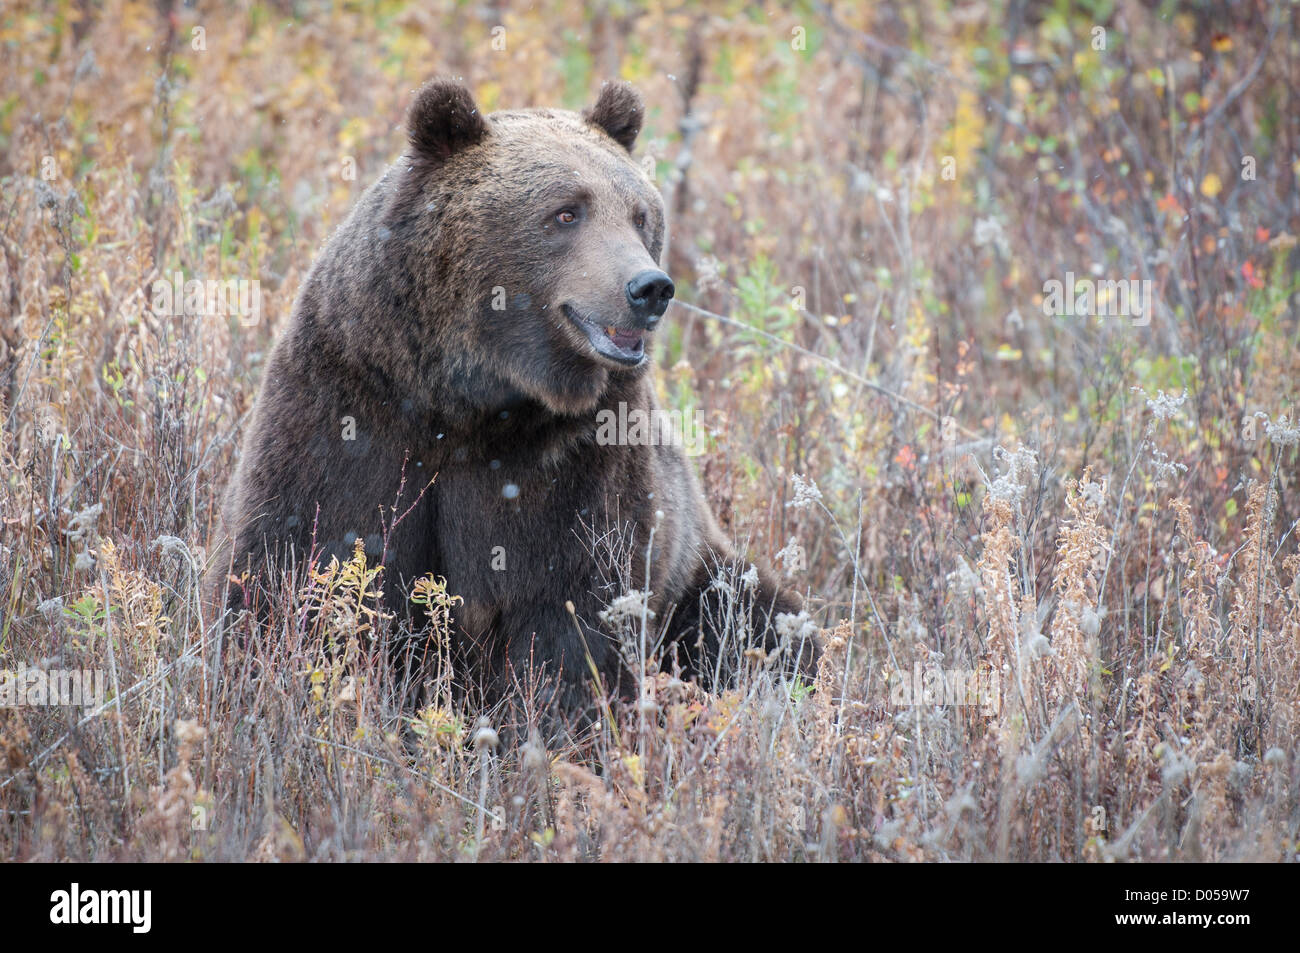 Grizzly foraging in the fall - Stock Image